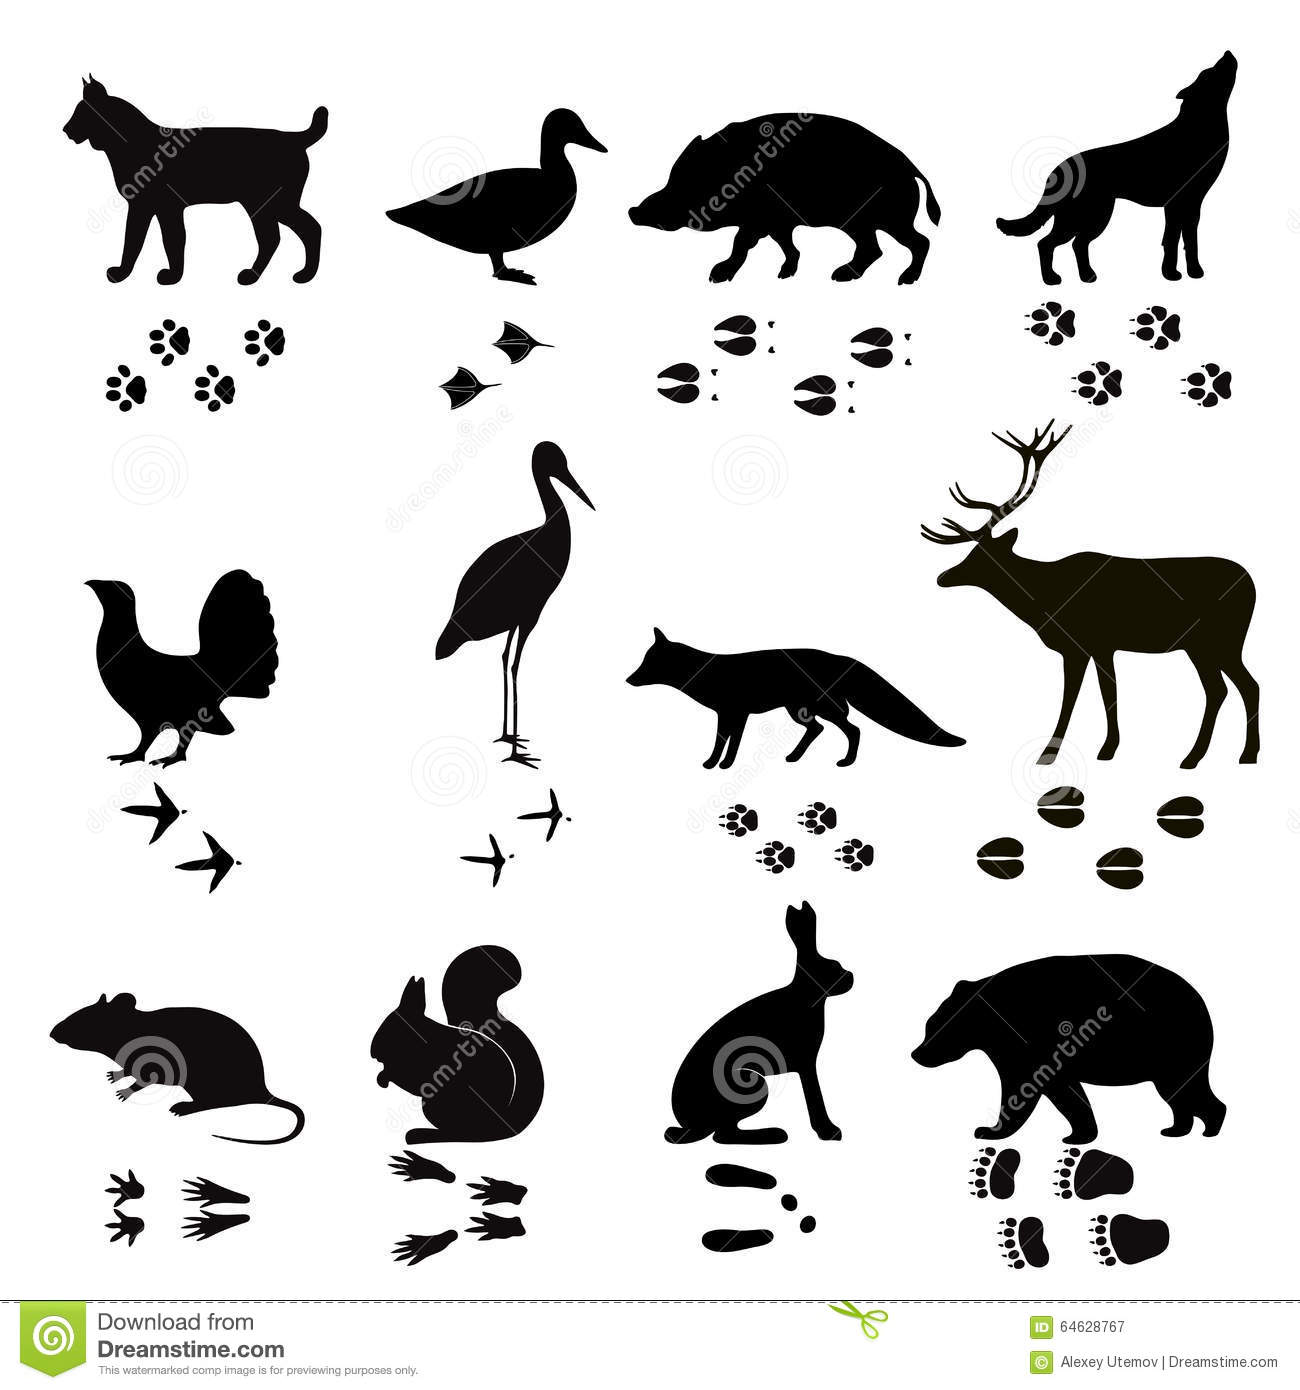 wild animals vector paw footsteps black silhouette stock deer silhouette vector free download deer head silhouette vector image